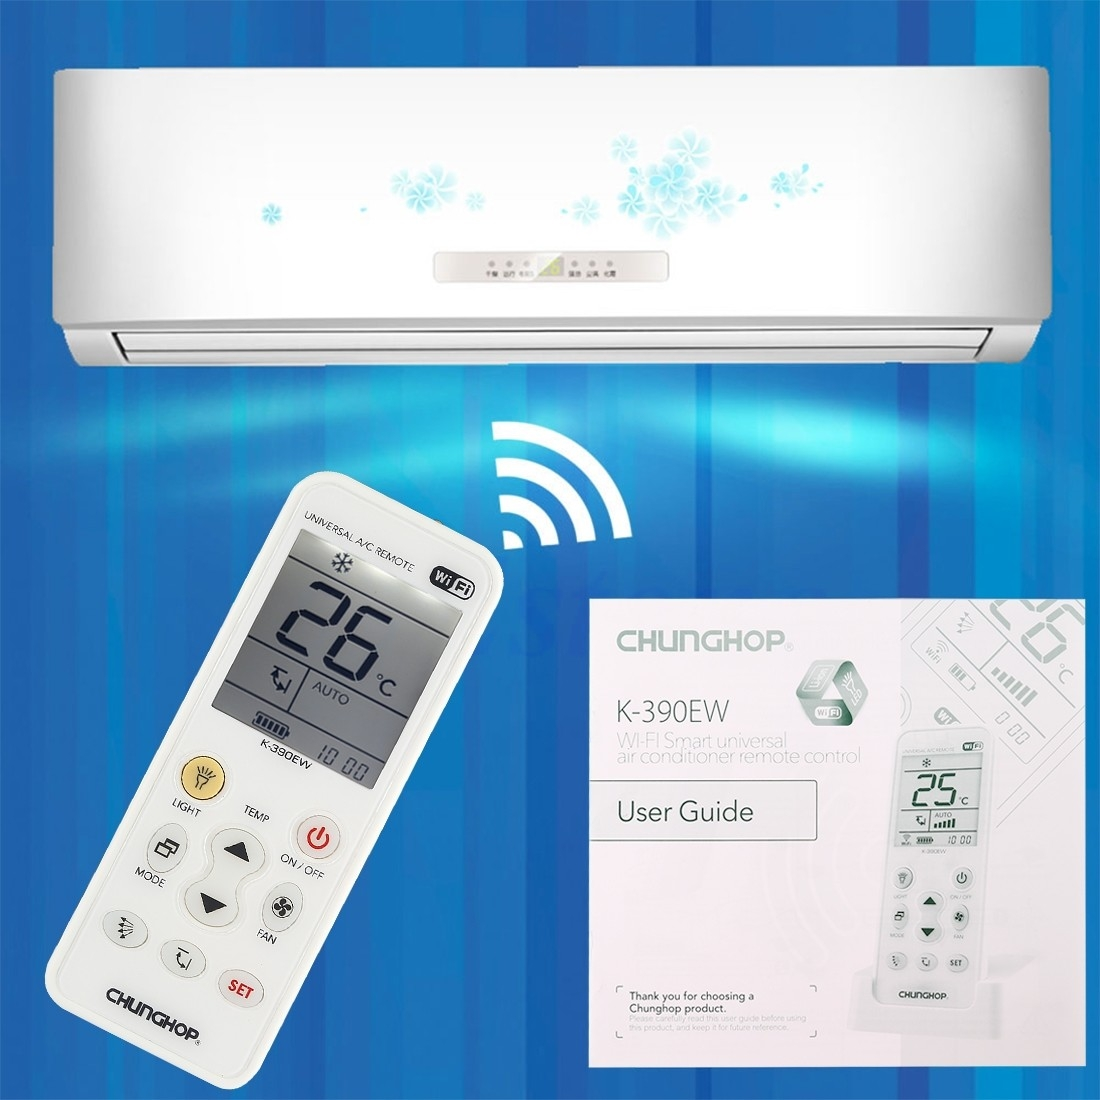 Generic CHUNGHOP K-390EW WiFi Smart Universal Air